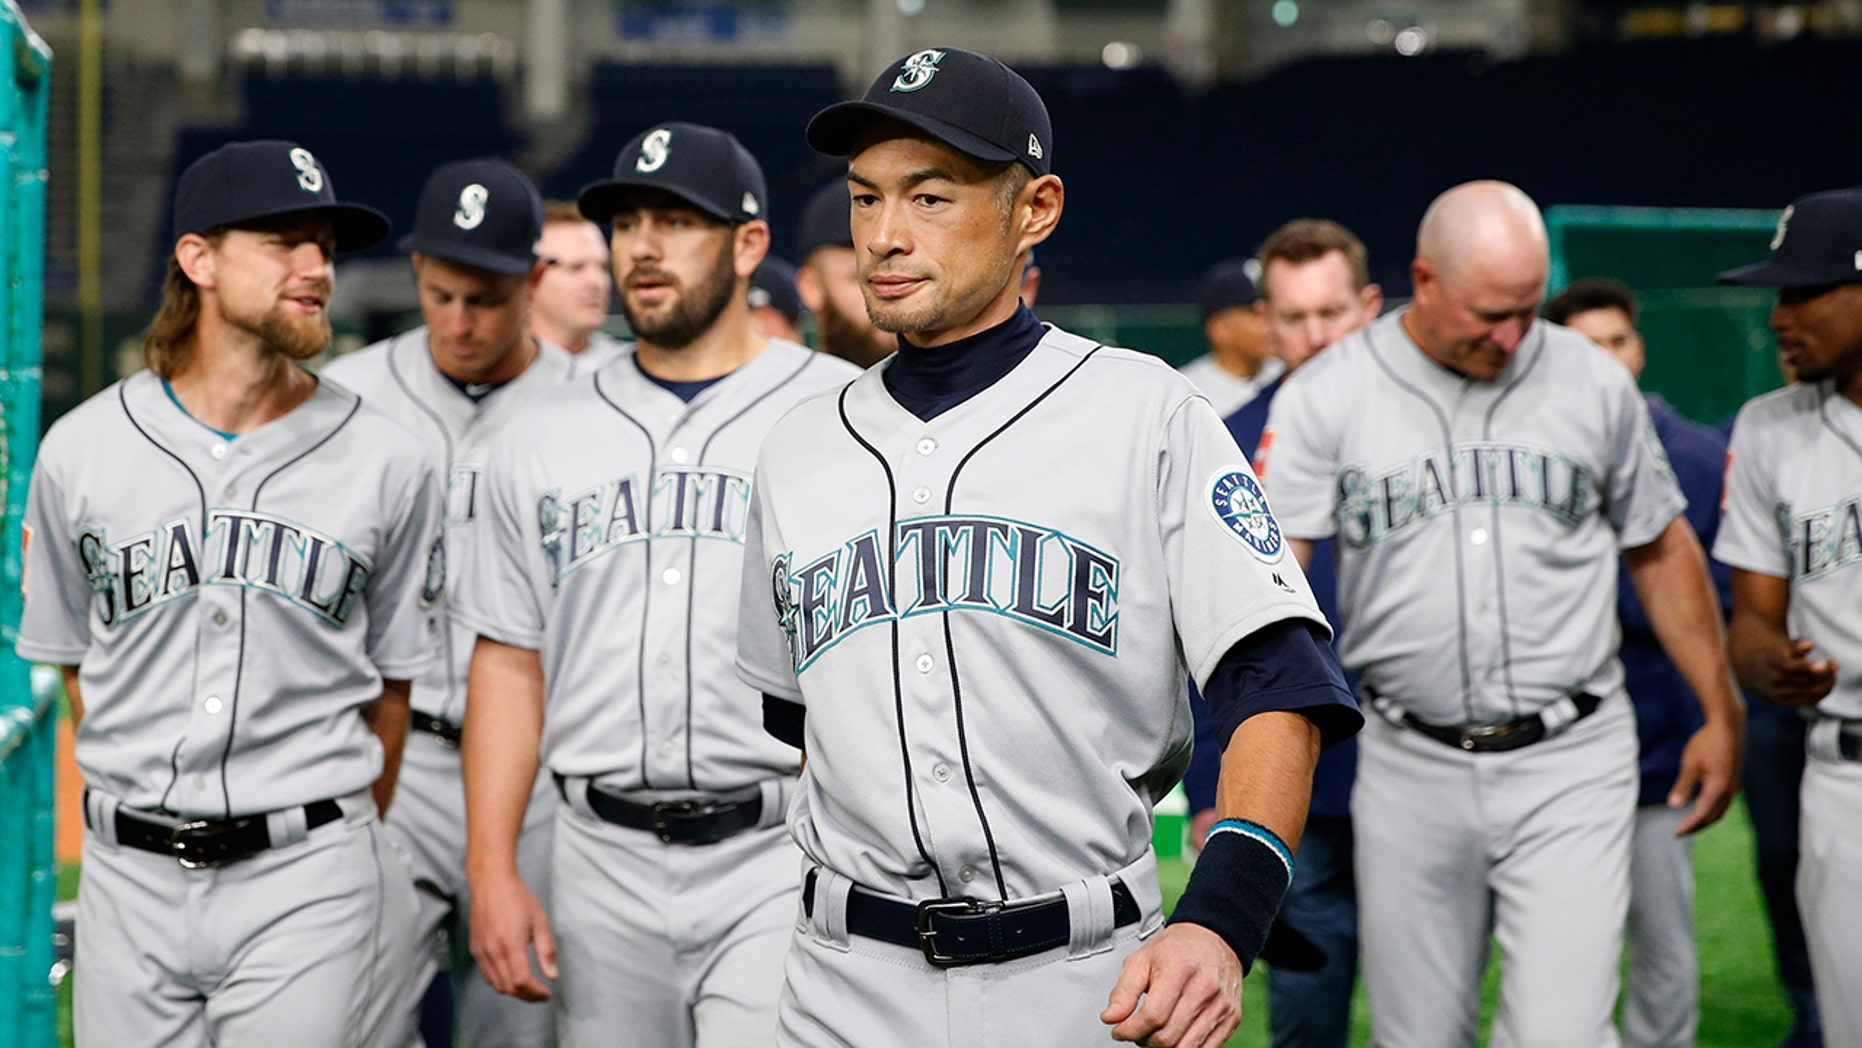 Seattle Mariners right fielder Ichiro Suzuki leaves after his team's group photo prior to Game 1 of a Major League opening series baseball game against the Oakland Athletics at Tokyo Dome in Tokyo, Wednesday, March 20, 2019.